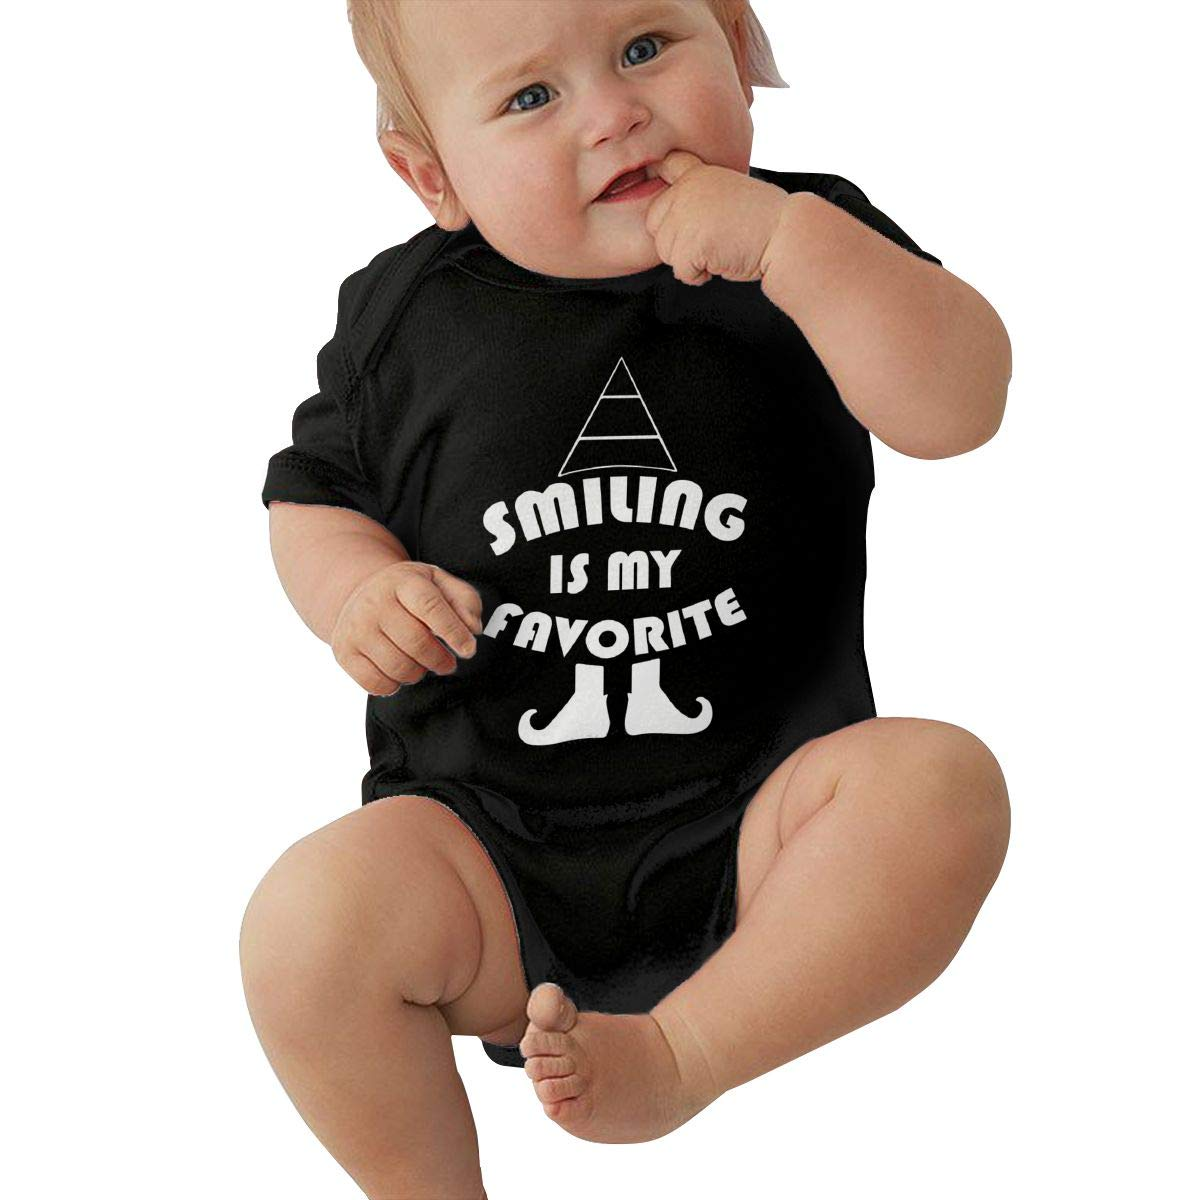 Mri-le2 Baby Girls Short Sleeve Bodysuit Smiling is My Favorite Baby Rompers